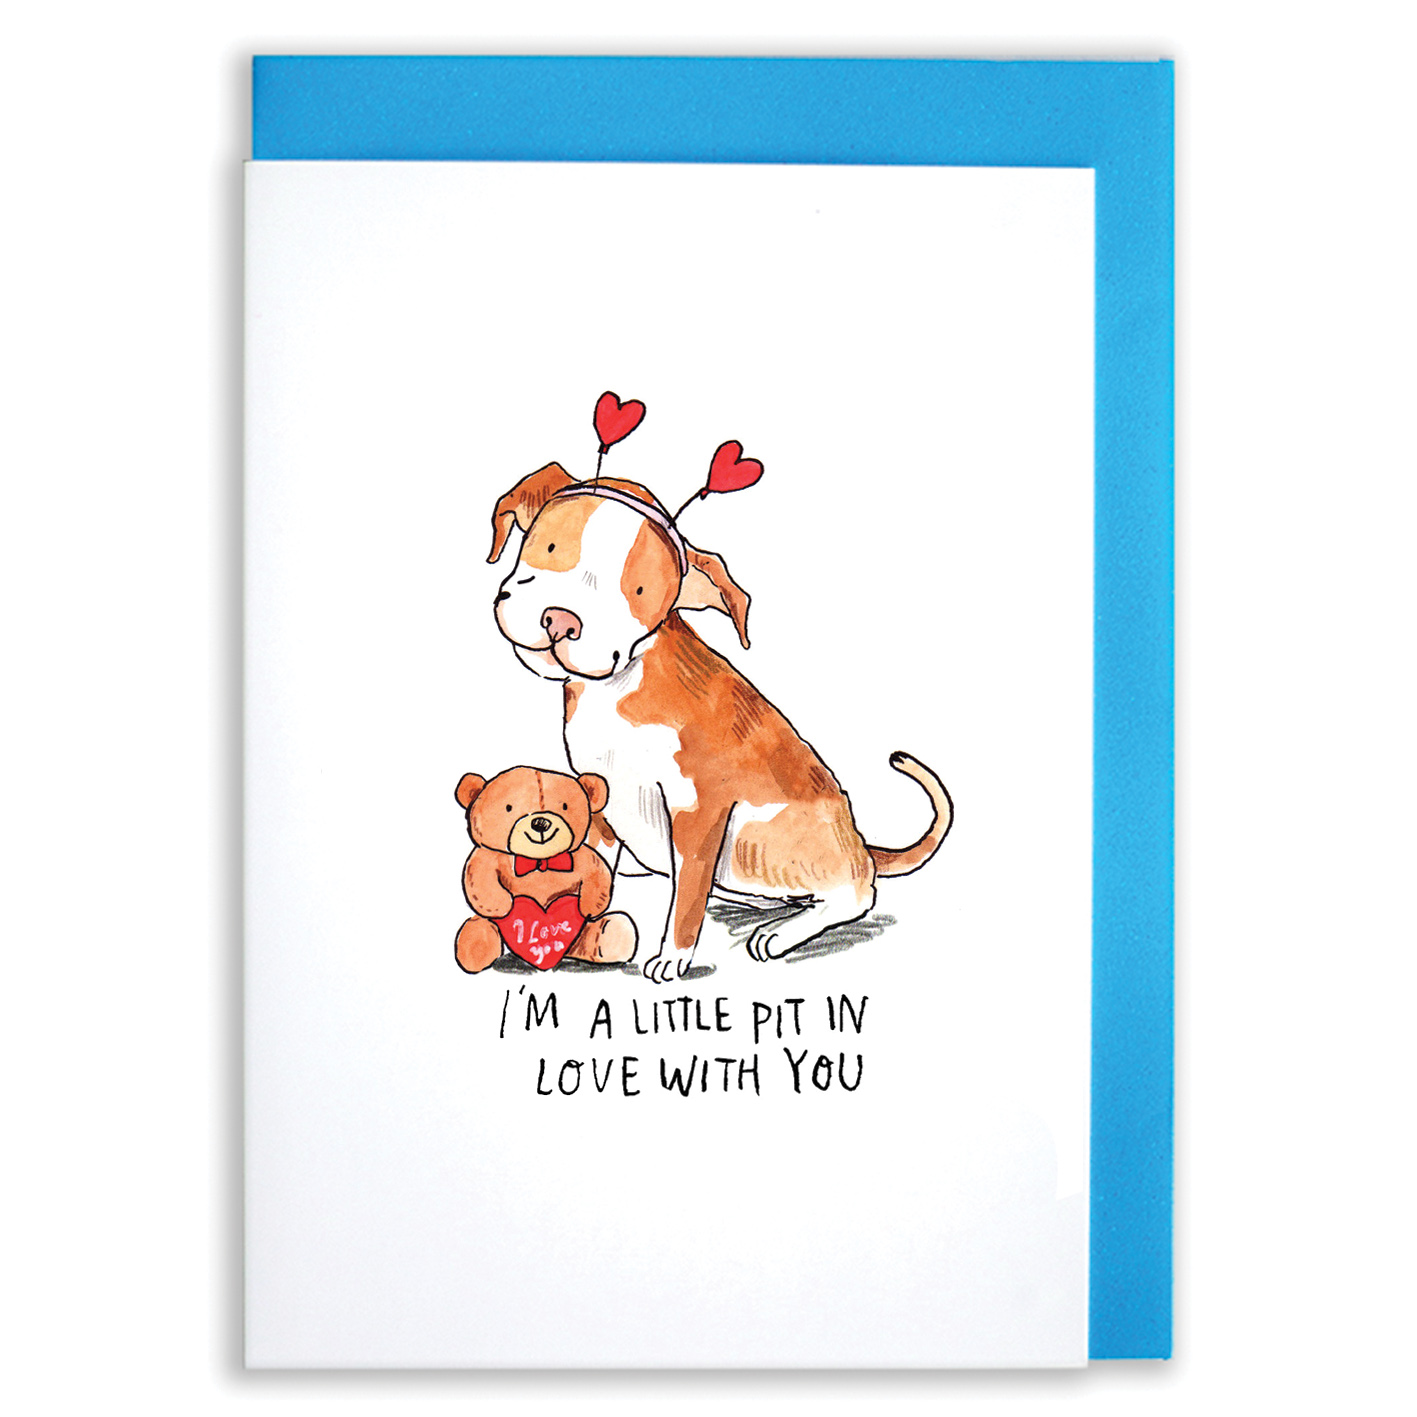 Little-Pit-Romantic-dog-themed-greetings-card_SM71_WB